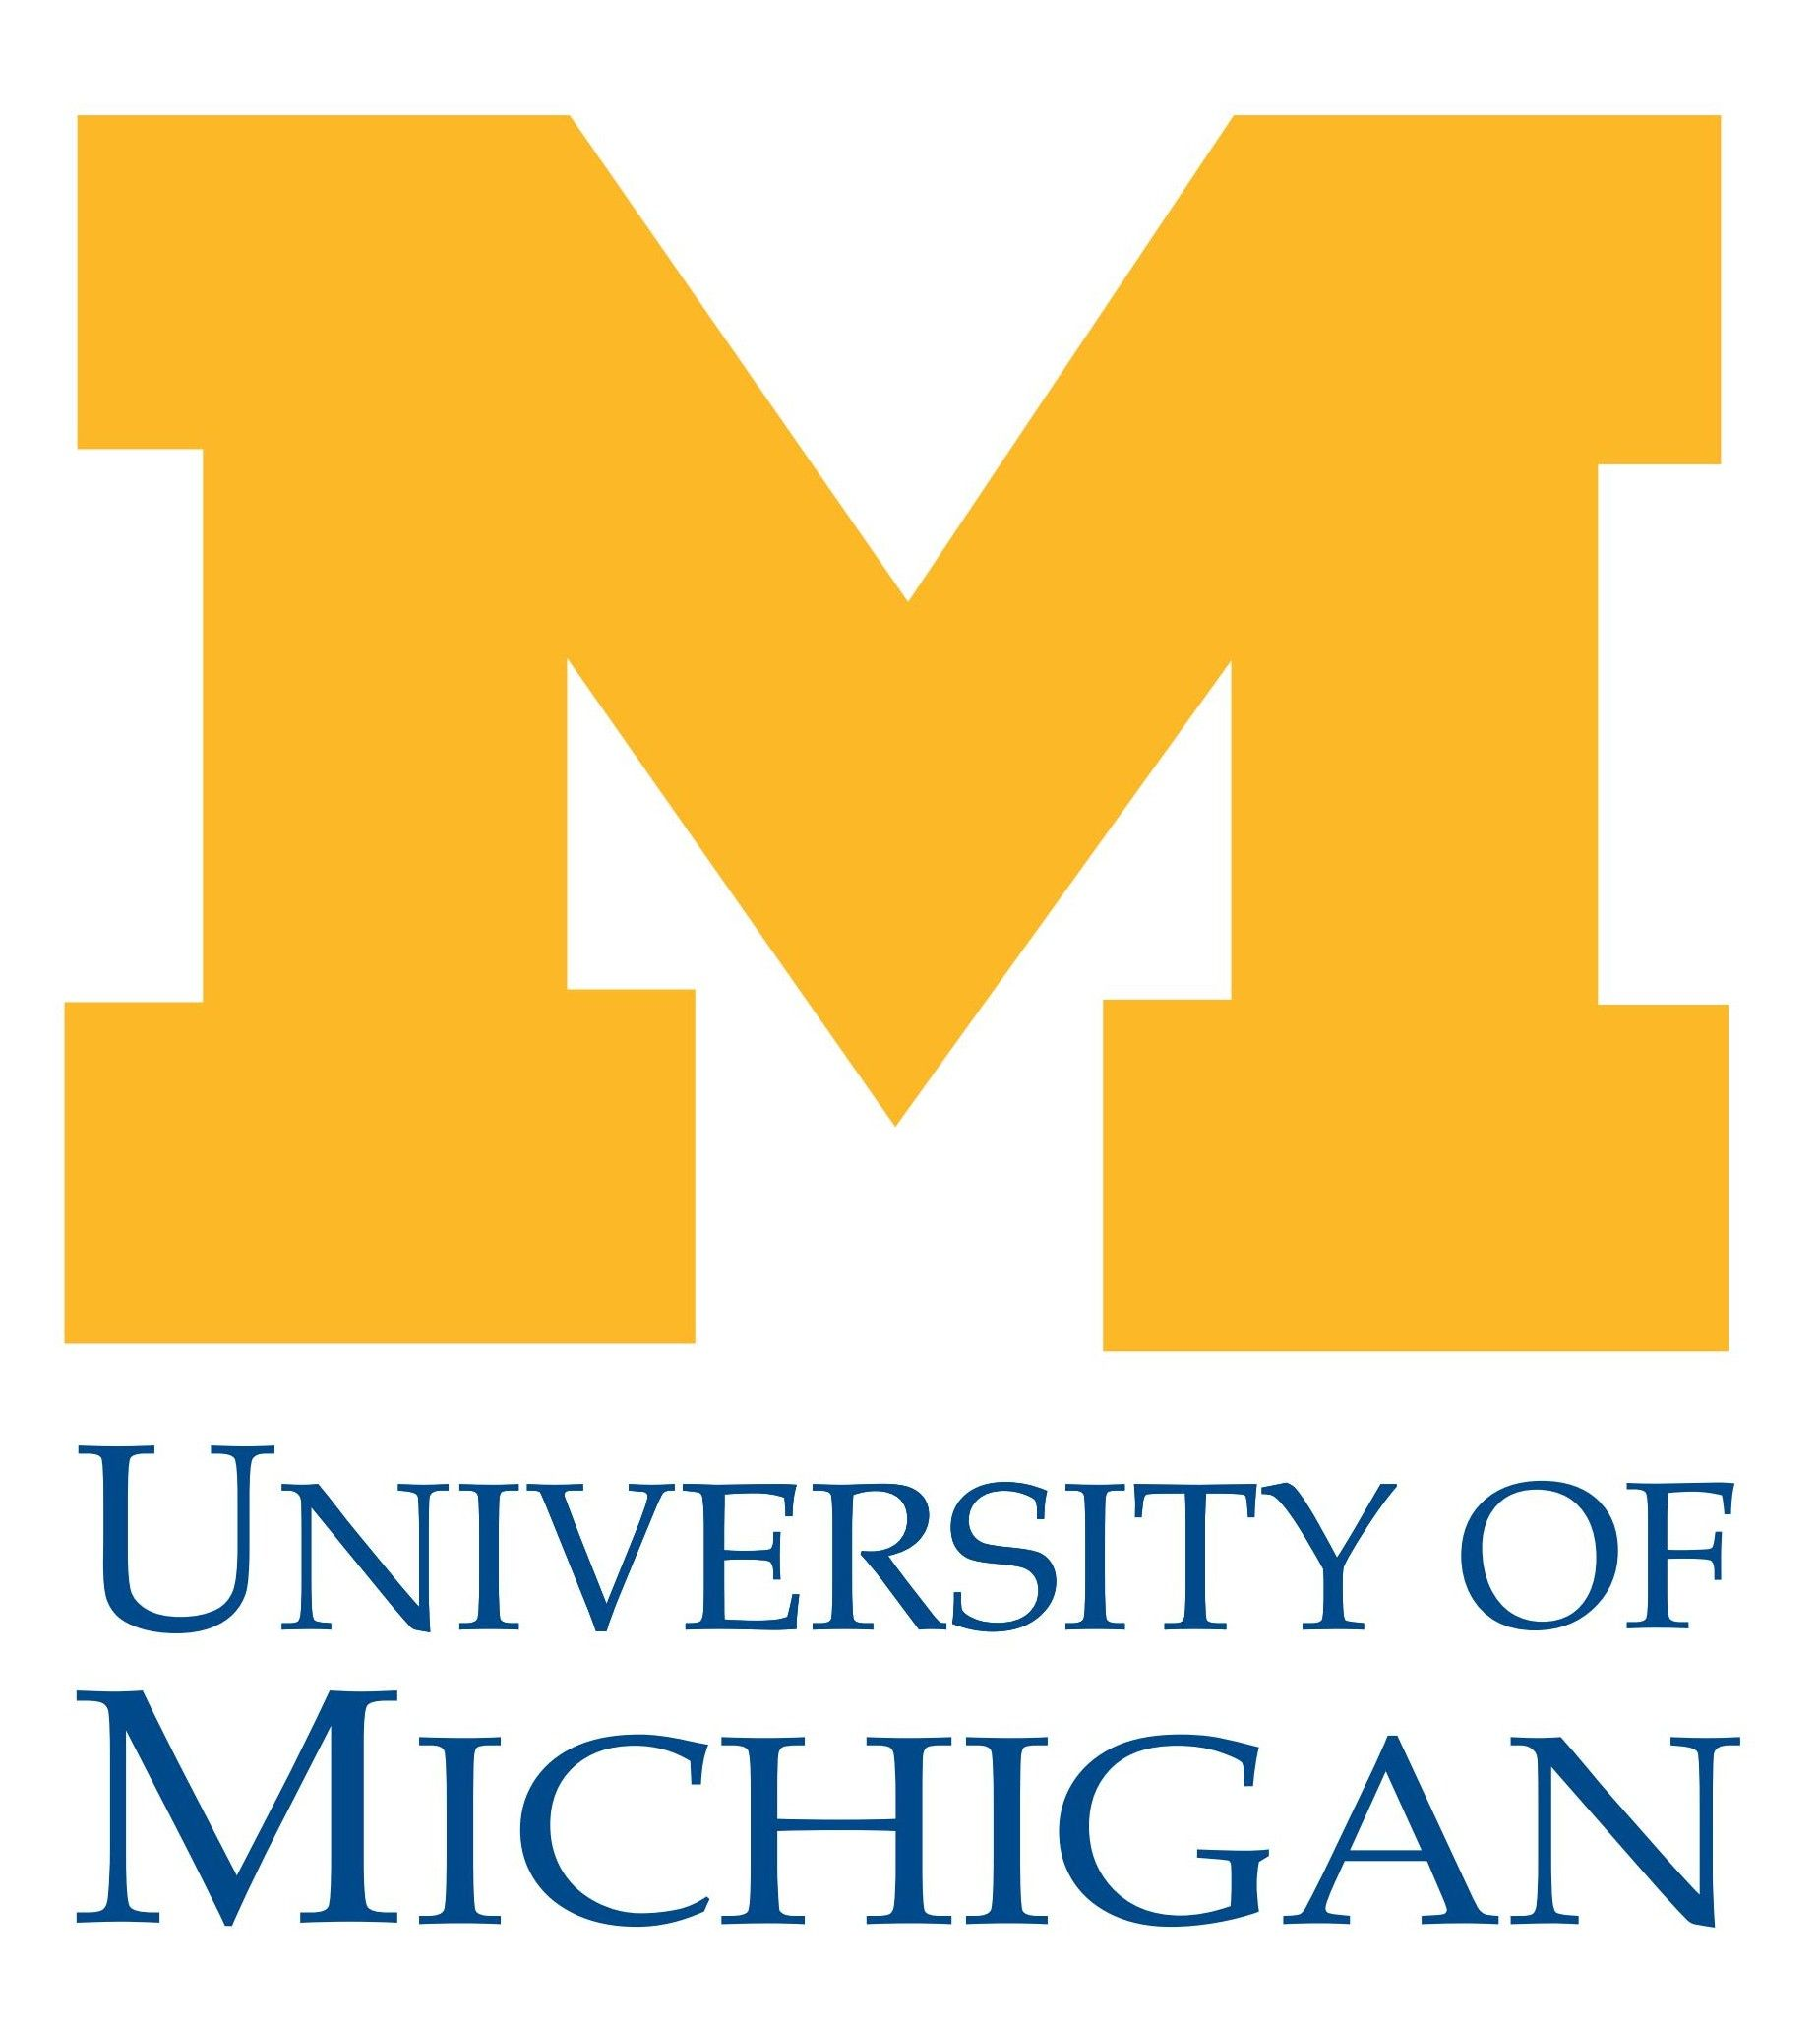 Michigan University Mr. H留学出願エッセイ